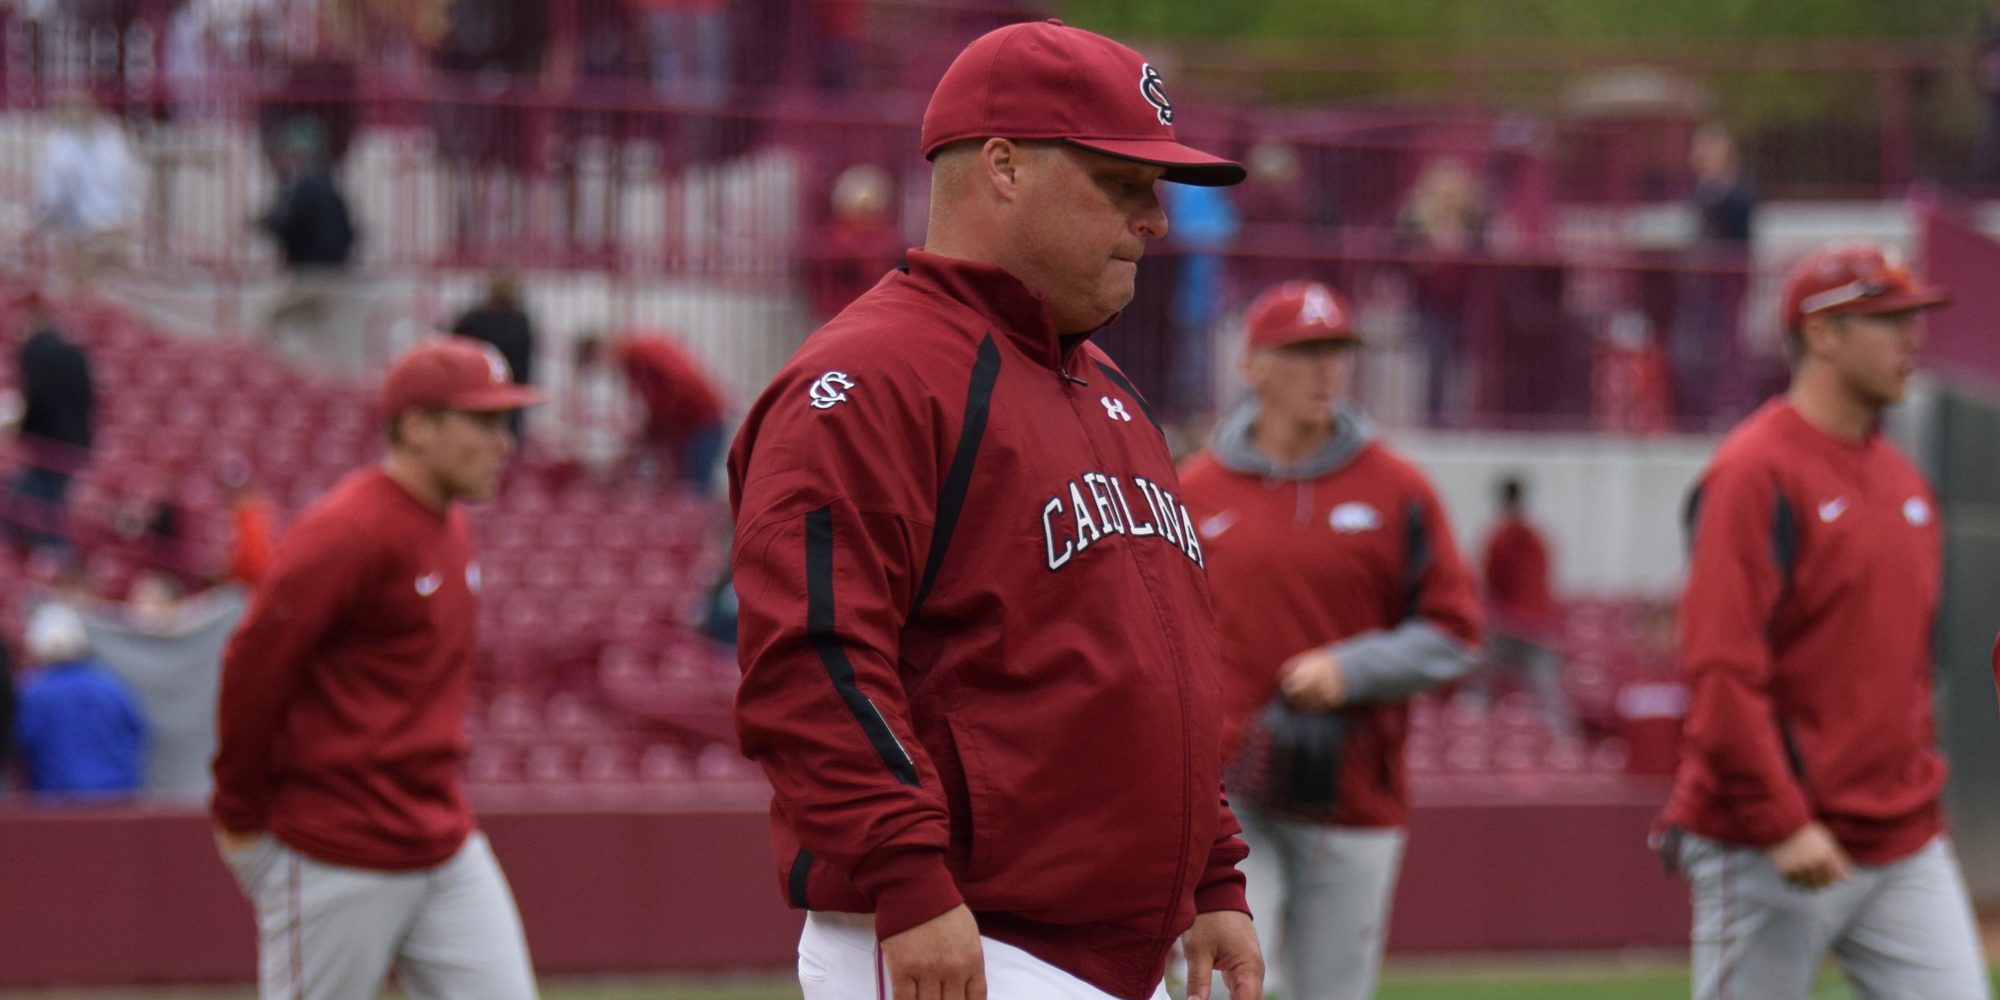 South Carolina AD begins search to replace baseball coach